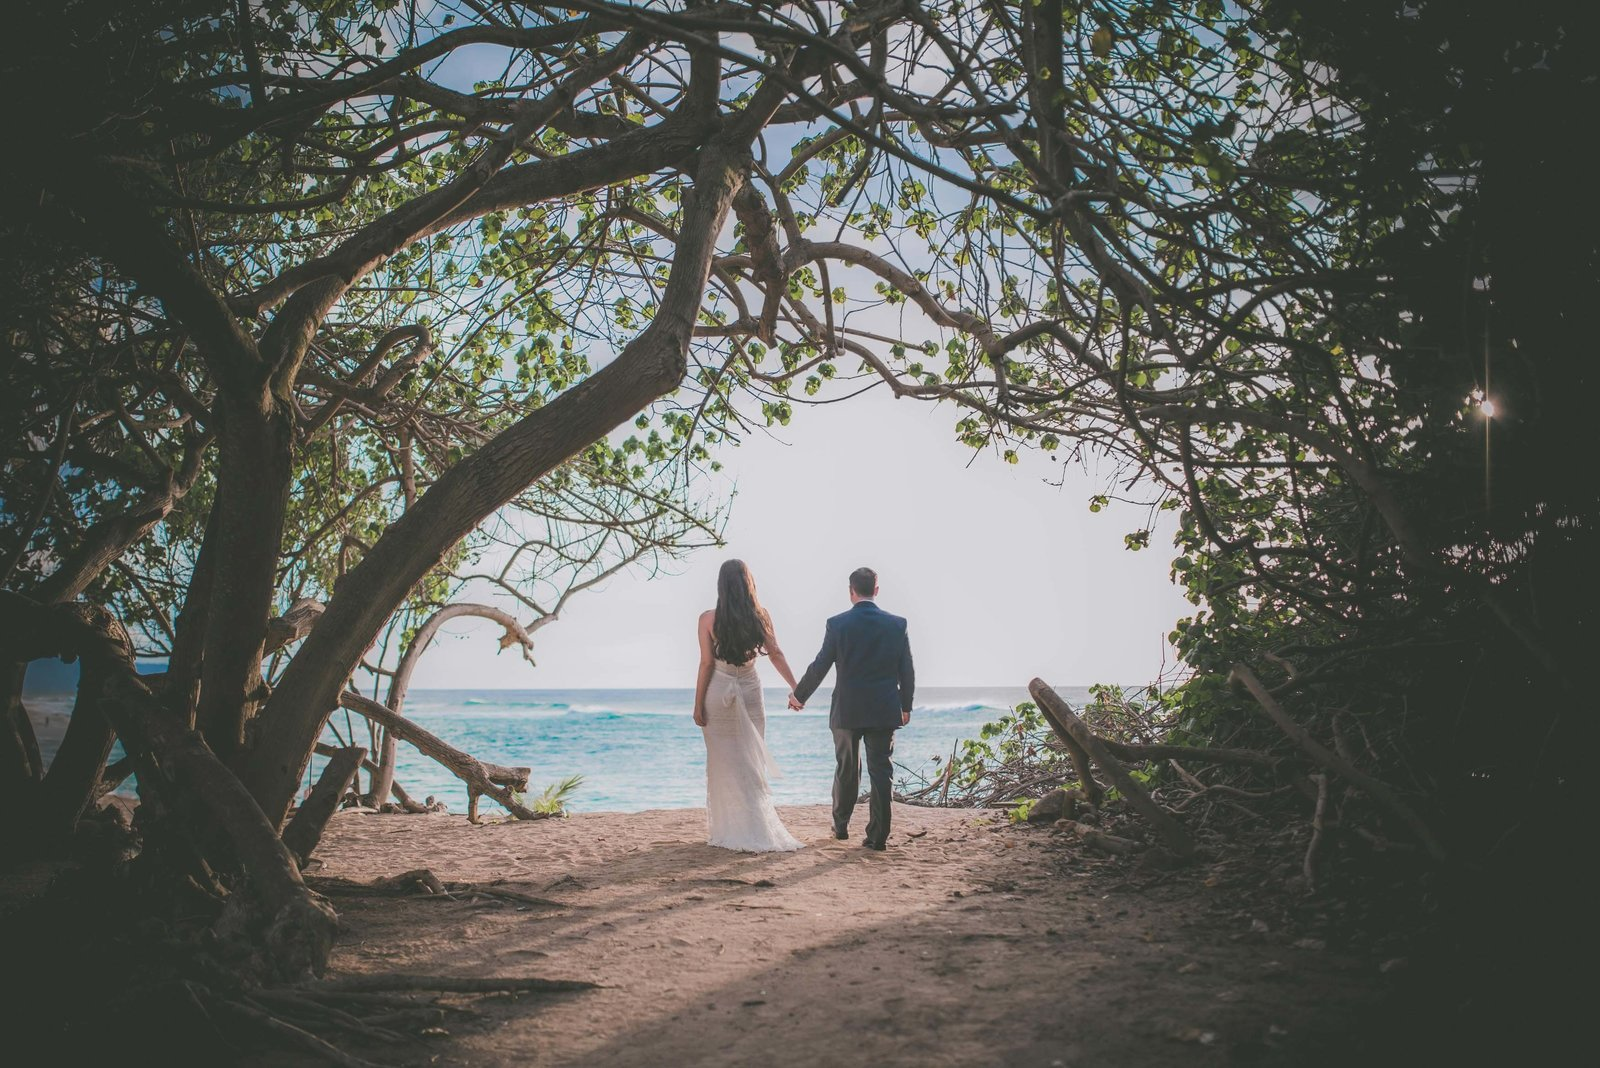 Bride and groom hold hands and take in the Oahu beach view while in the tree line.